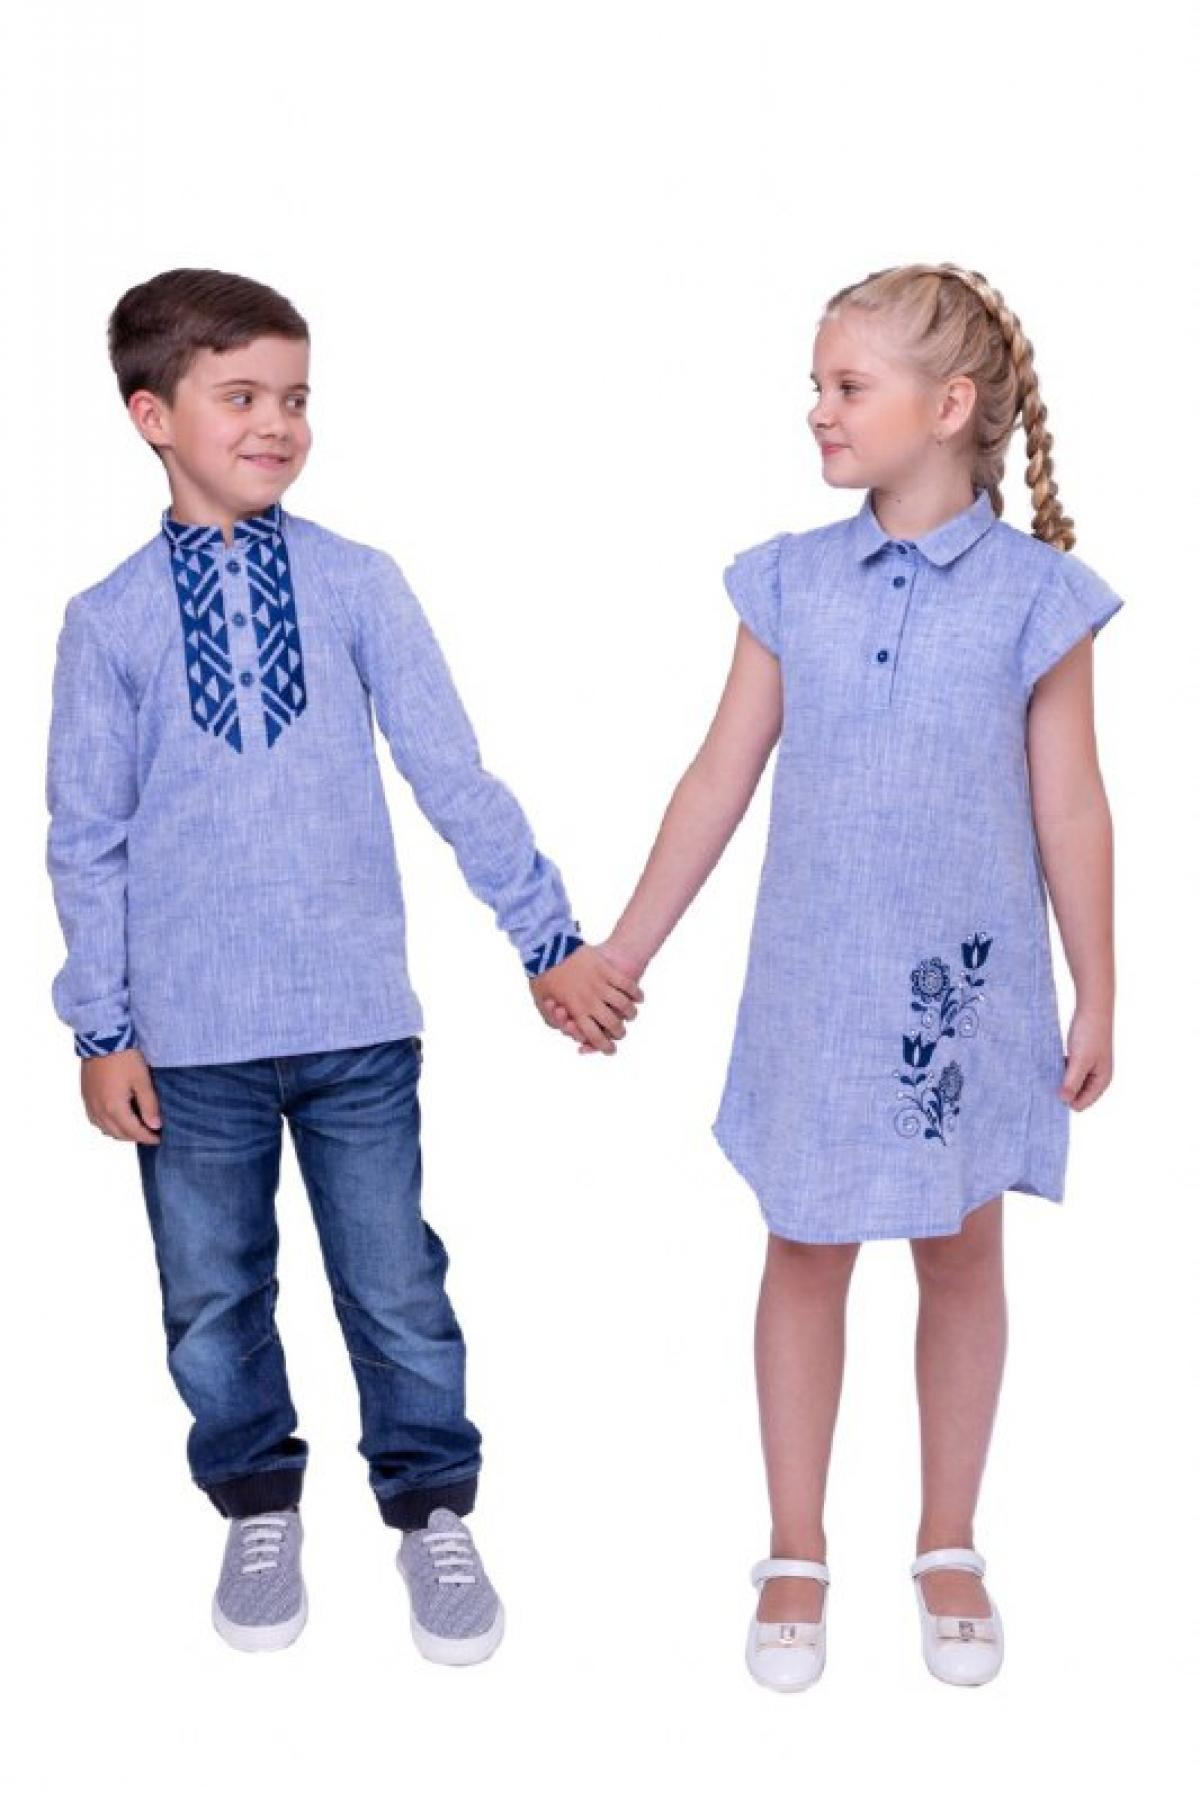 Blue embroidered shirt for a boy with dark blue embroidery. Photo №2. | Narodnyi dim Ukraine